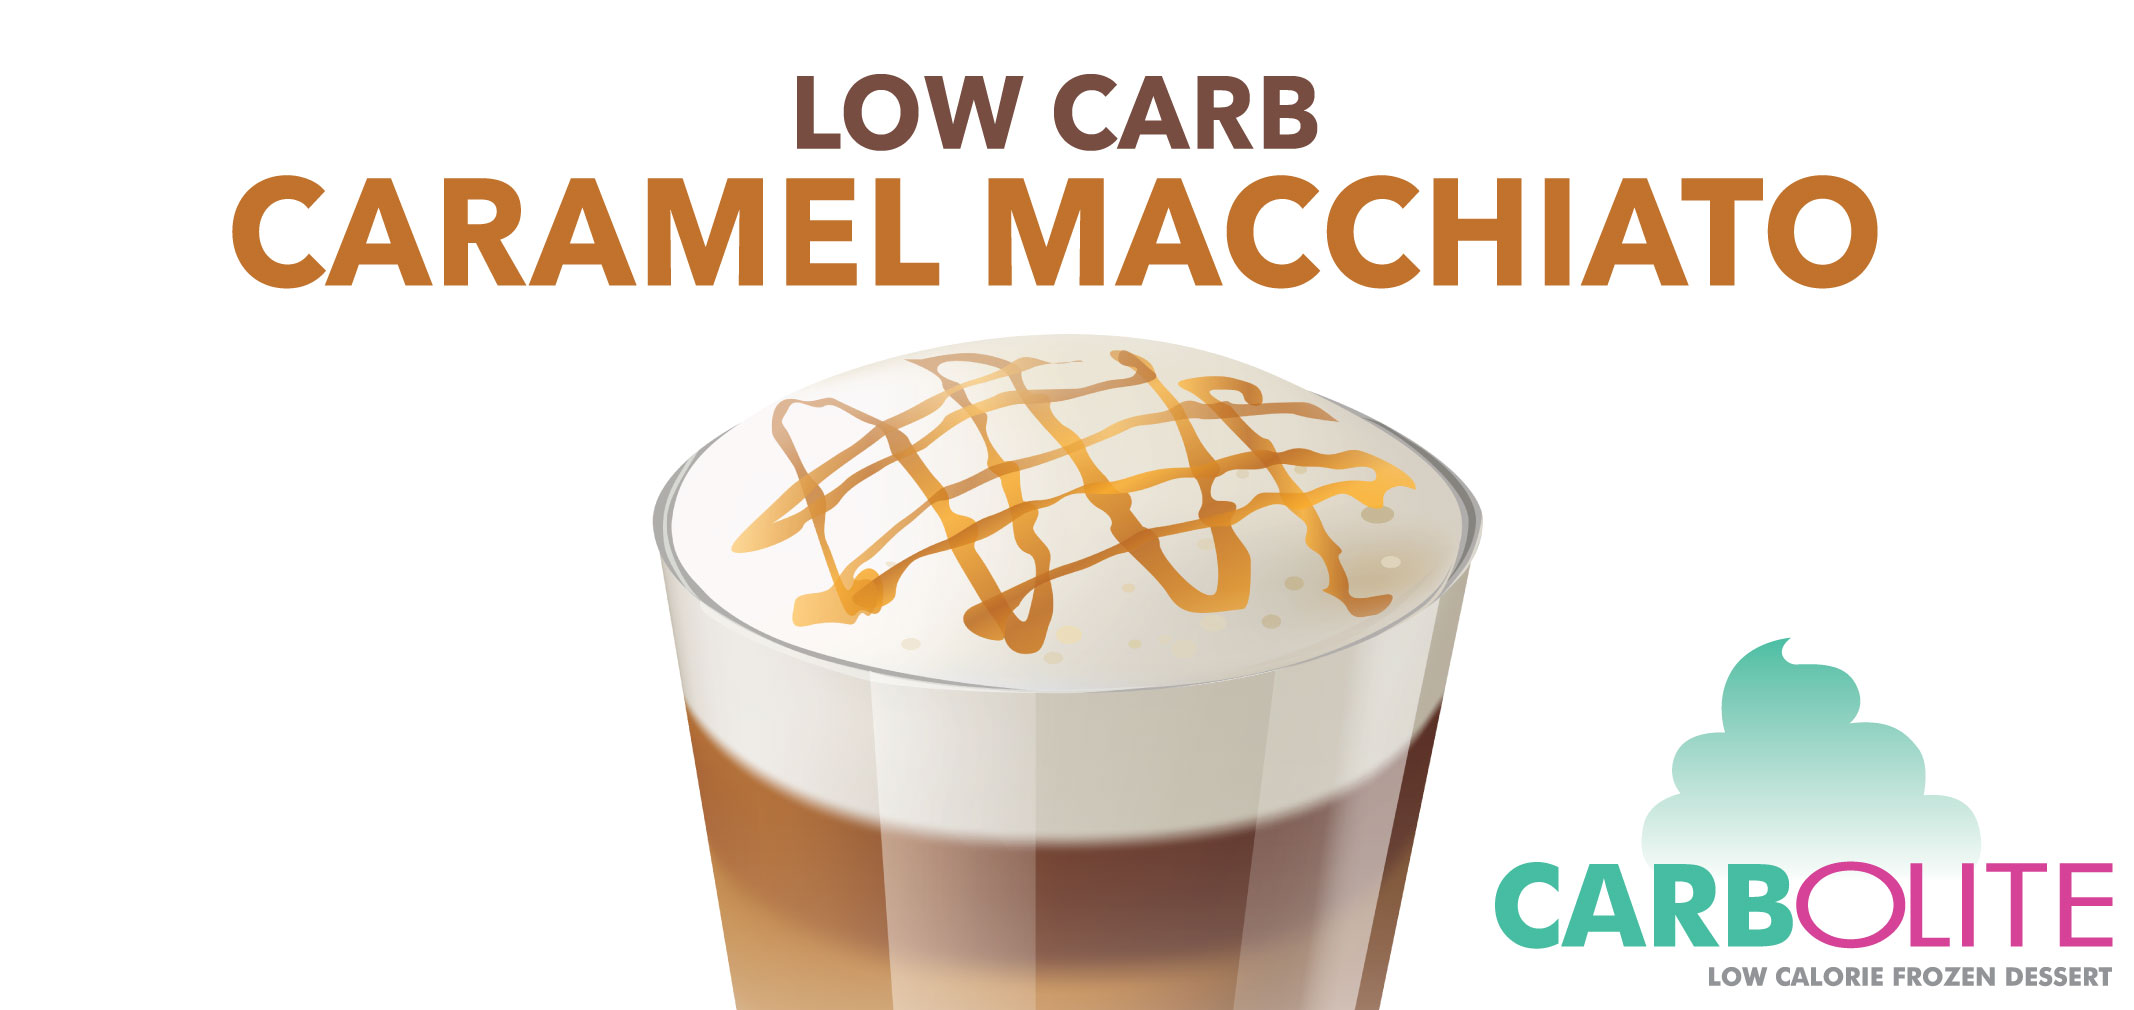 carbolite low carb caramel macchiato label image